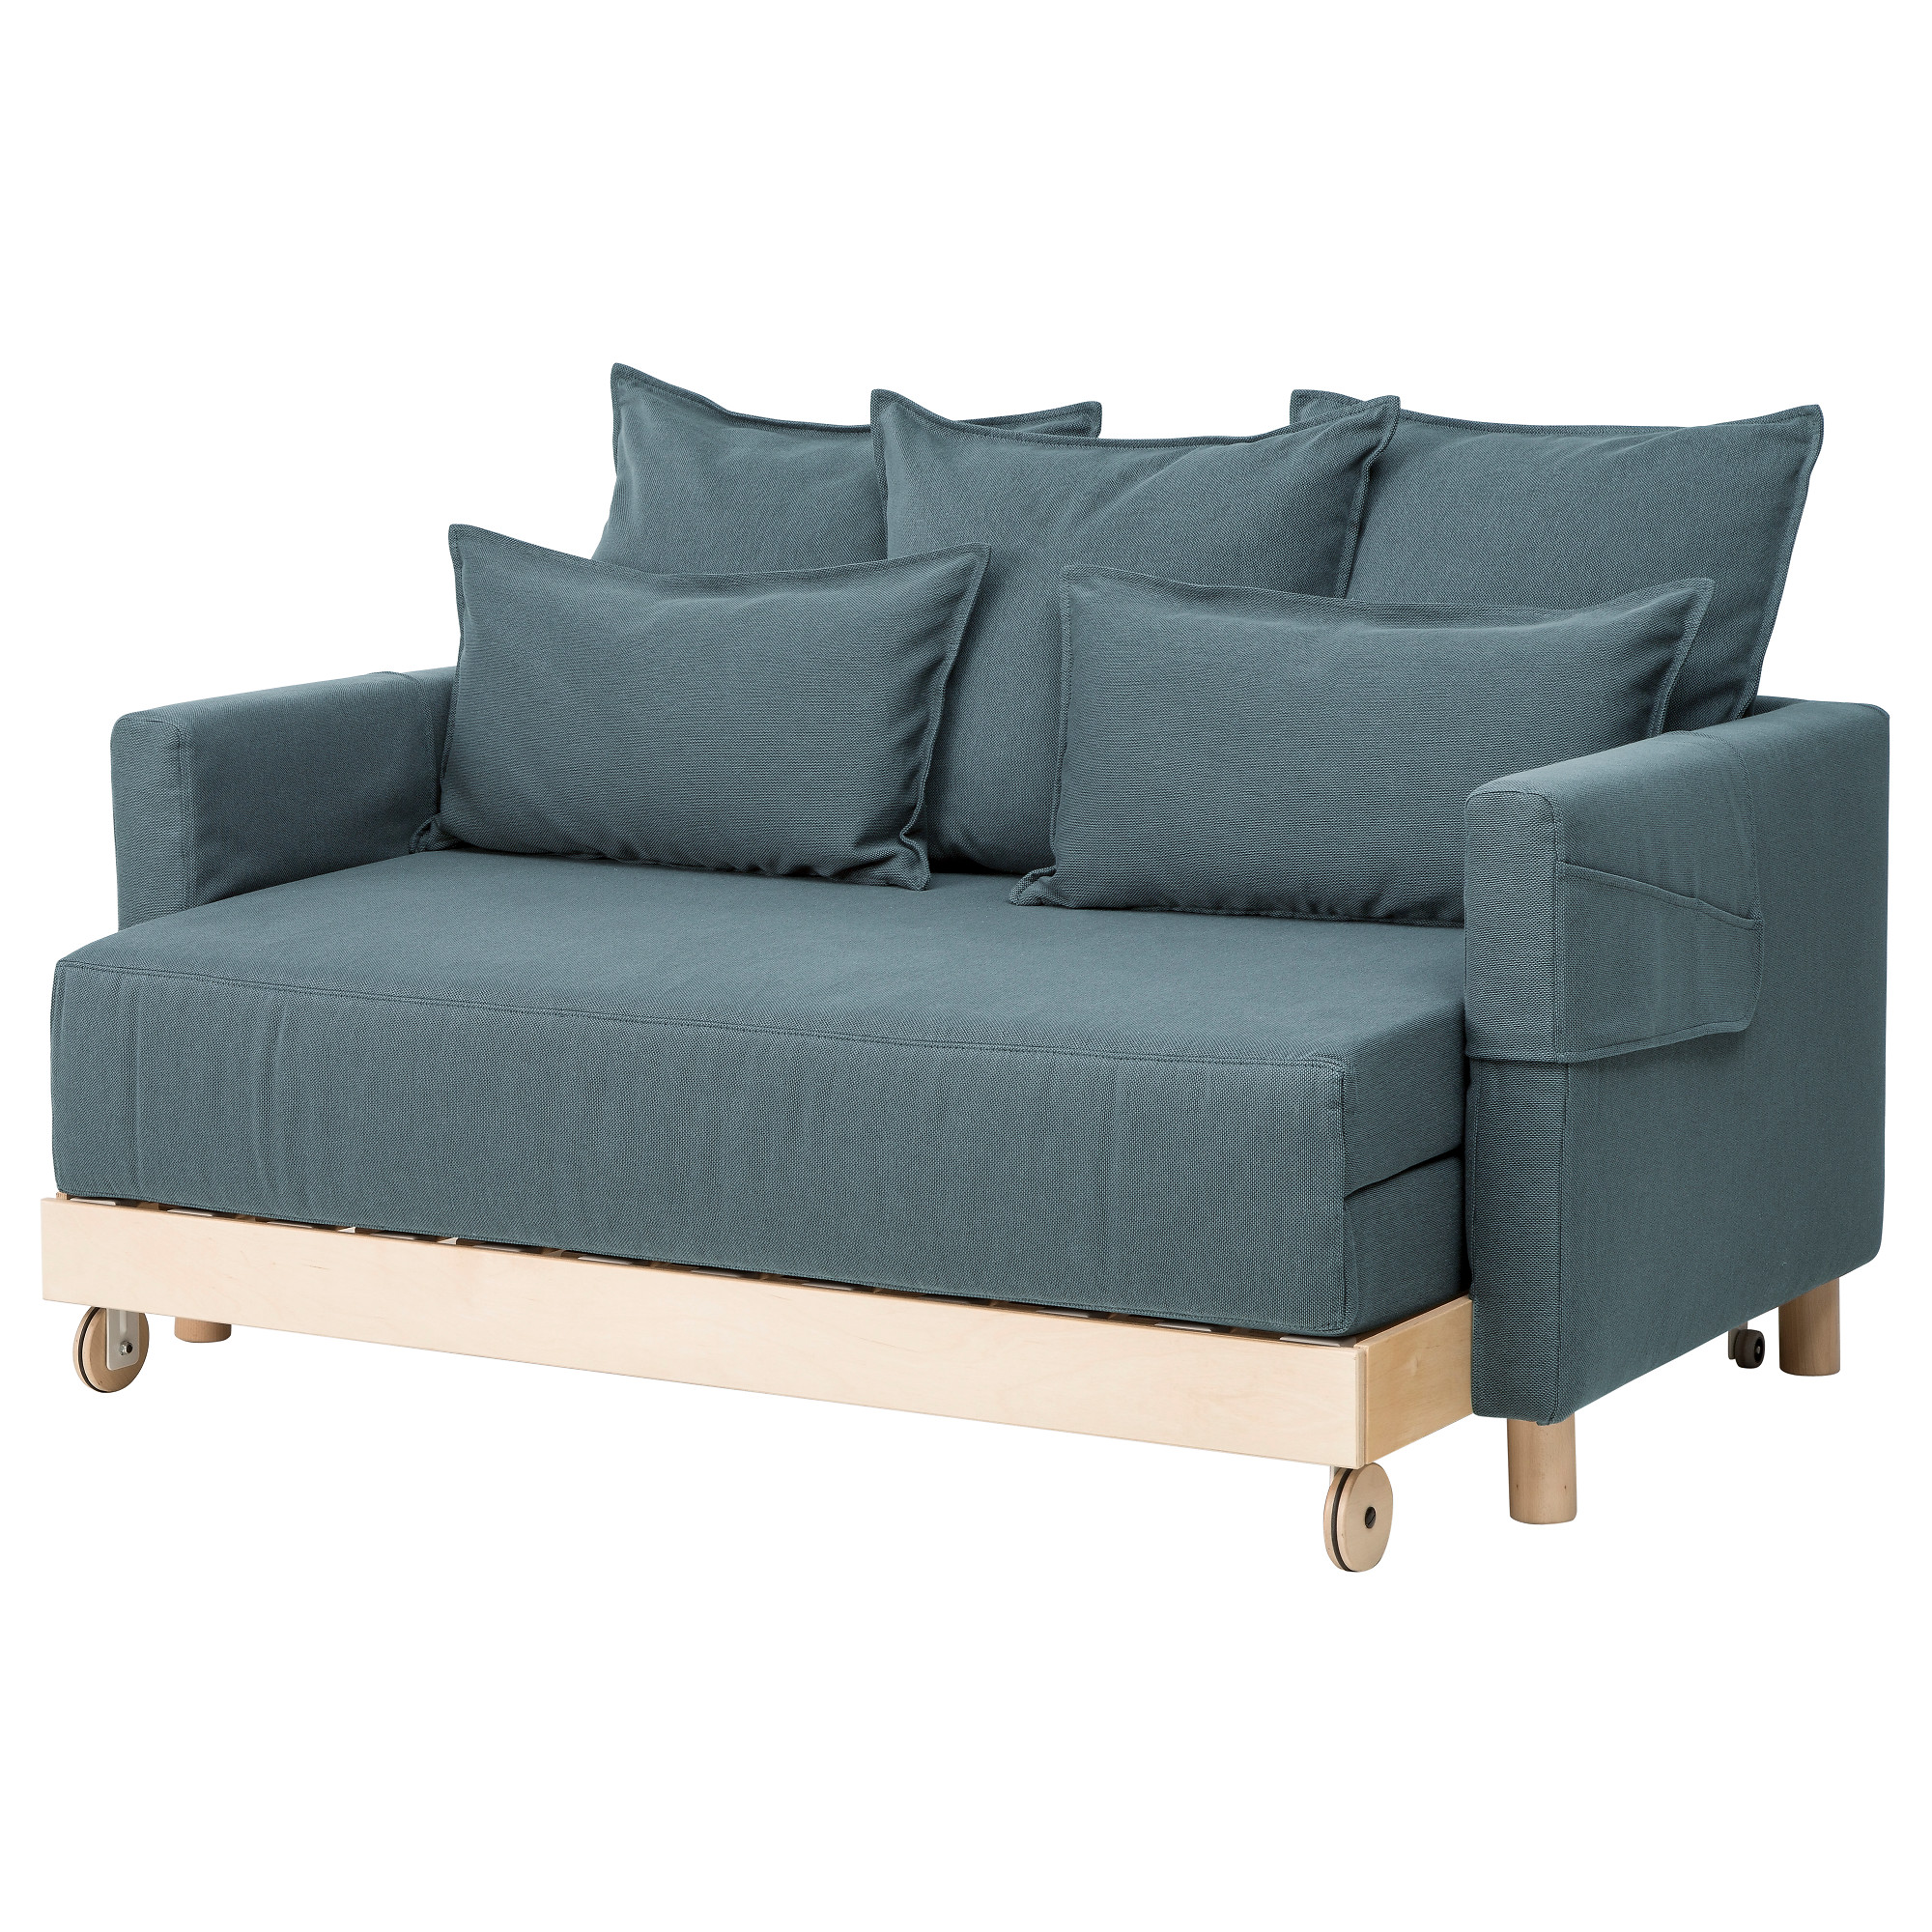 "ASKEN""SET Sofa bed Finnsta turquoise IKEA"